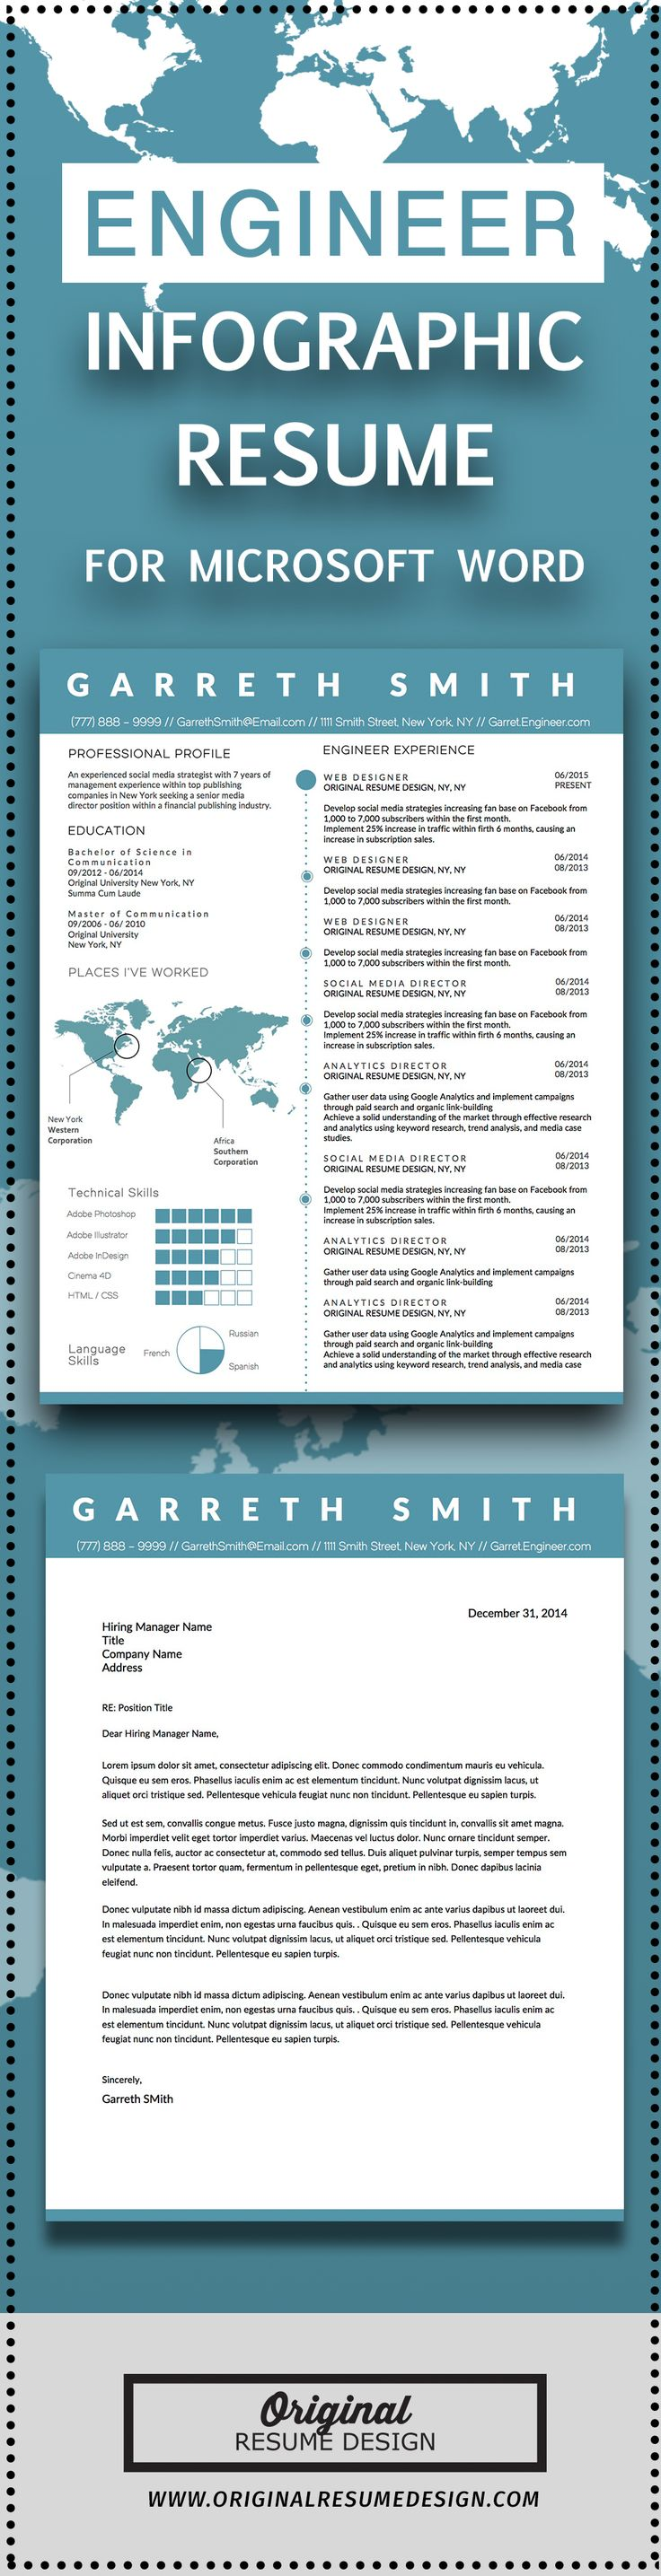 best ideas about business resume template creative infographic clean business resume template for microsoft word perfect for engineers software developers